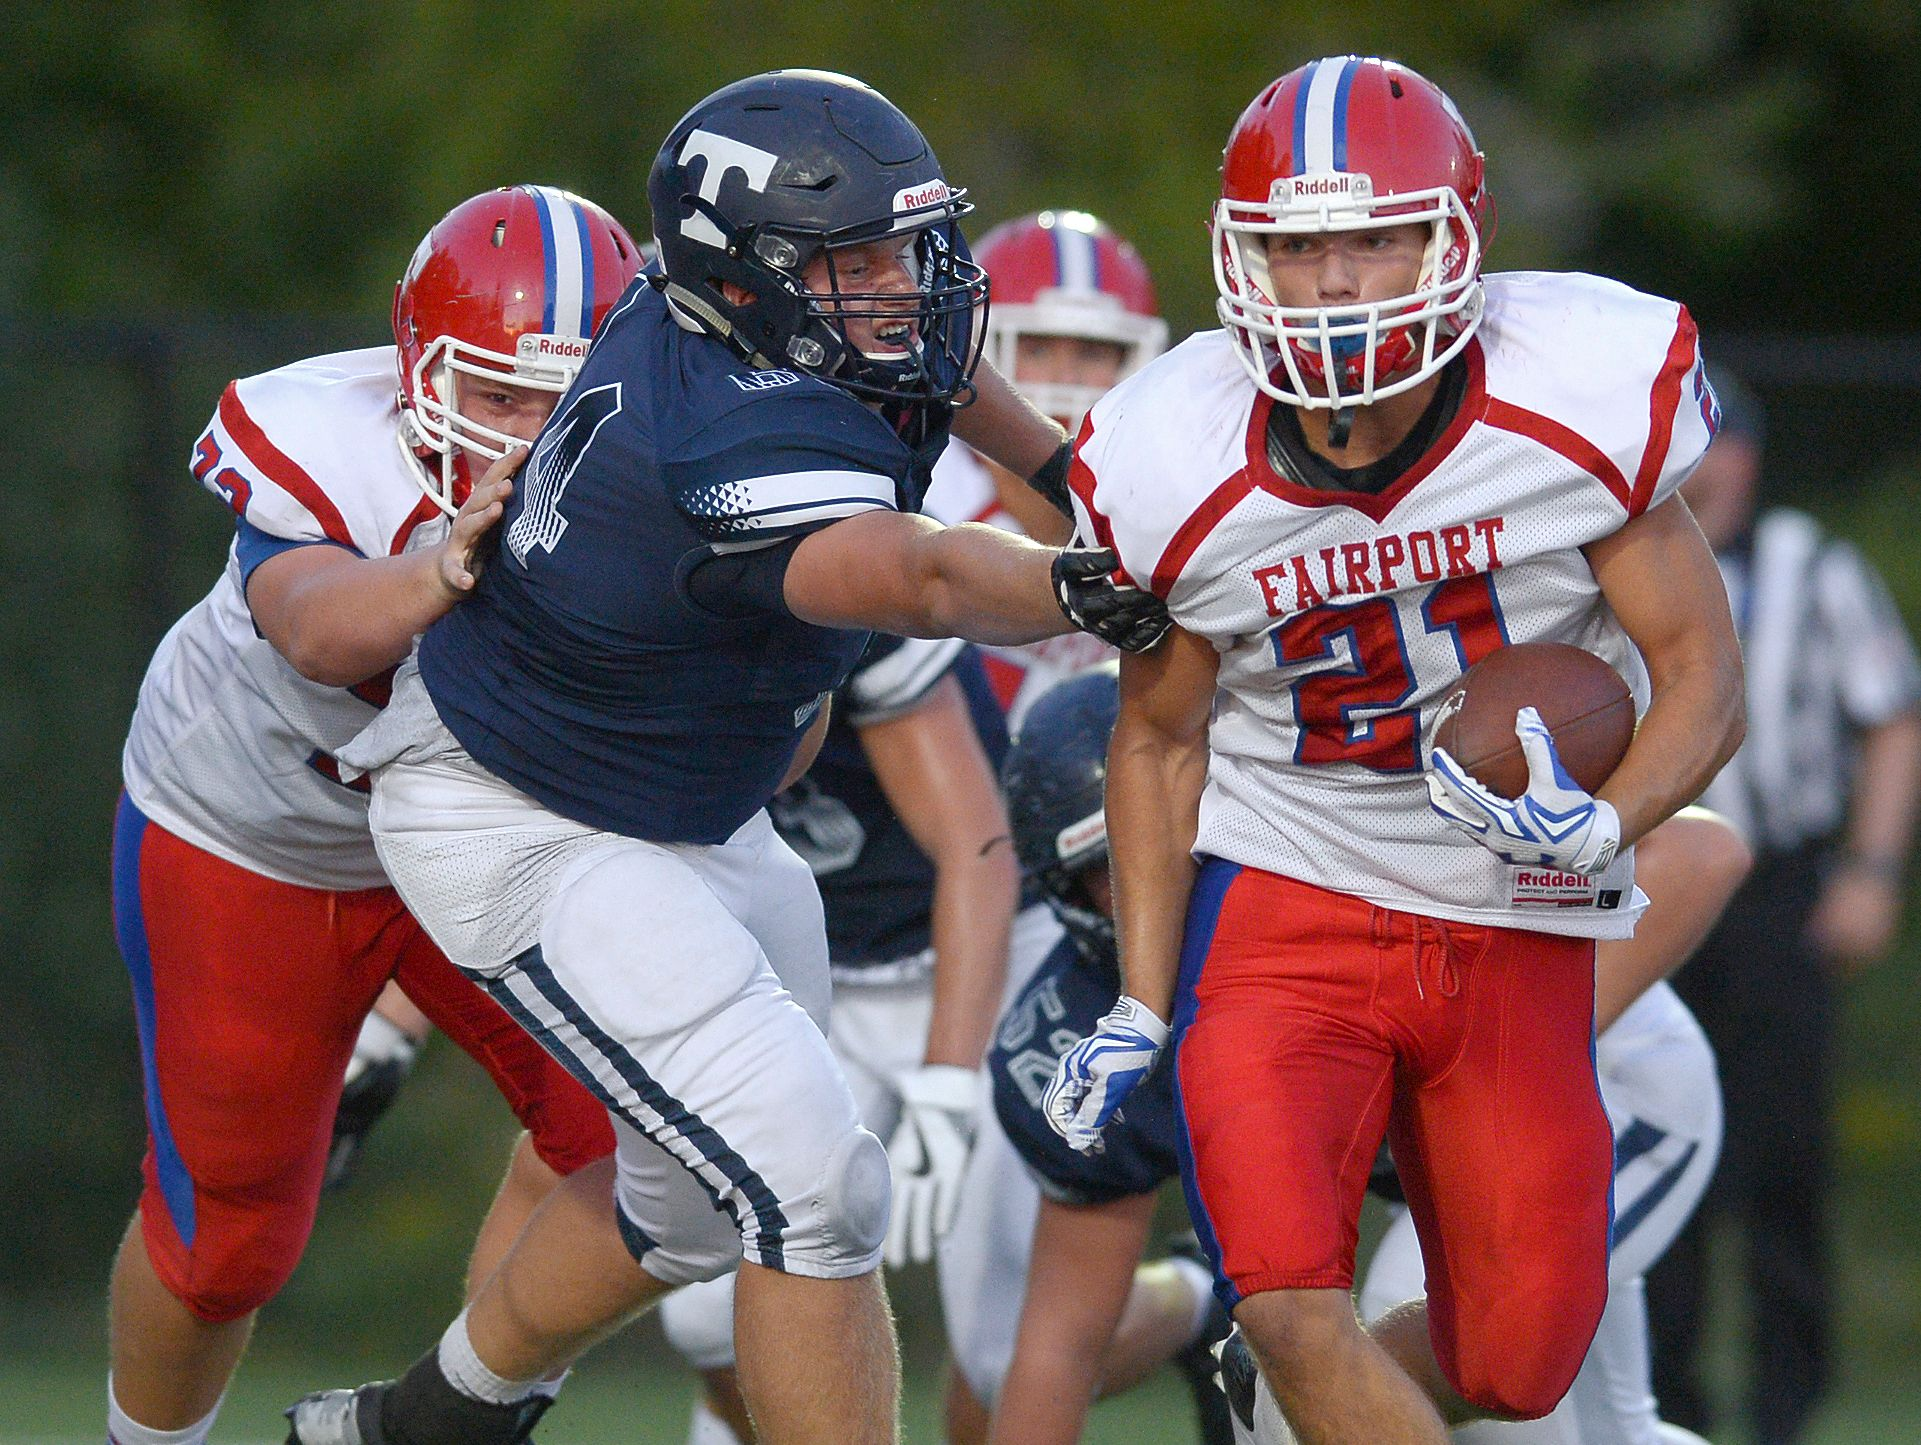 Fairport's Dom Gombetto, right, eludes Webster Thomas' Tyler Curtis on his way to scoring the Raiders' third touchdown.